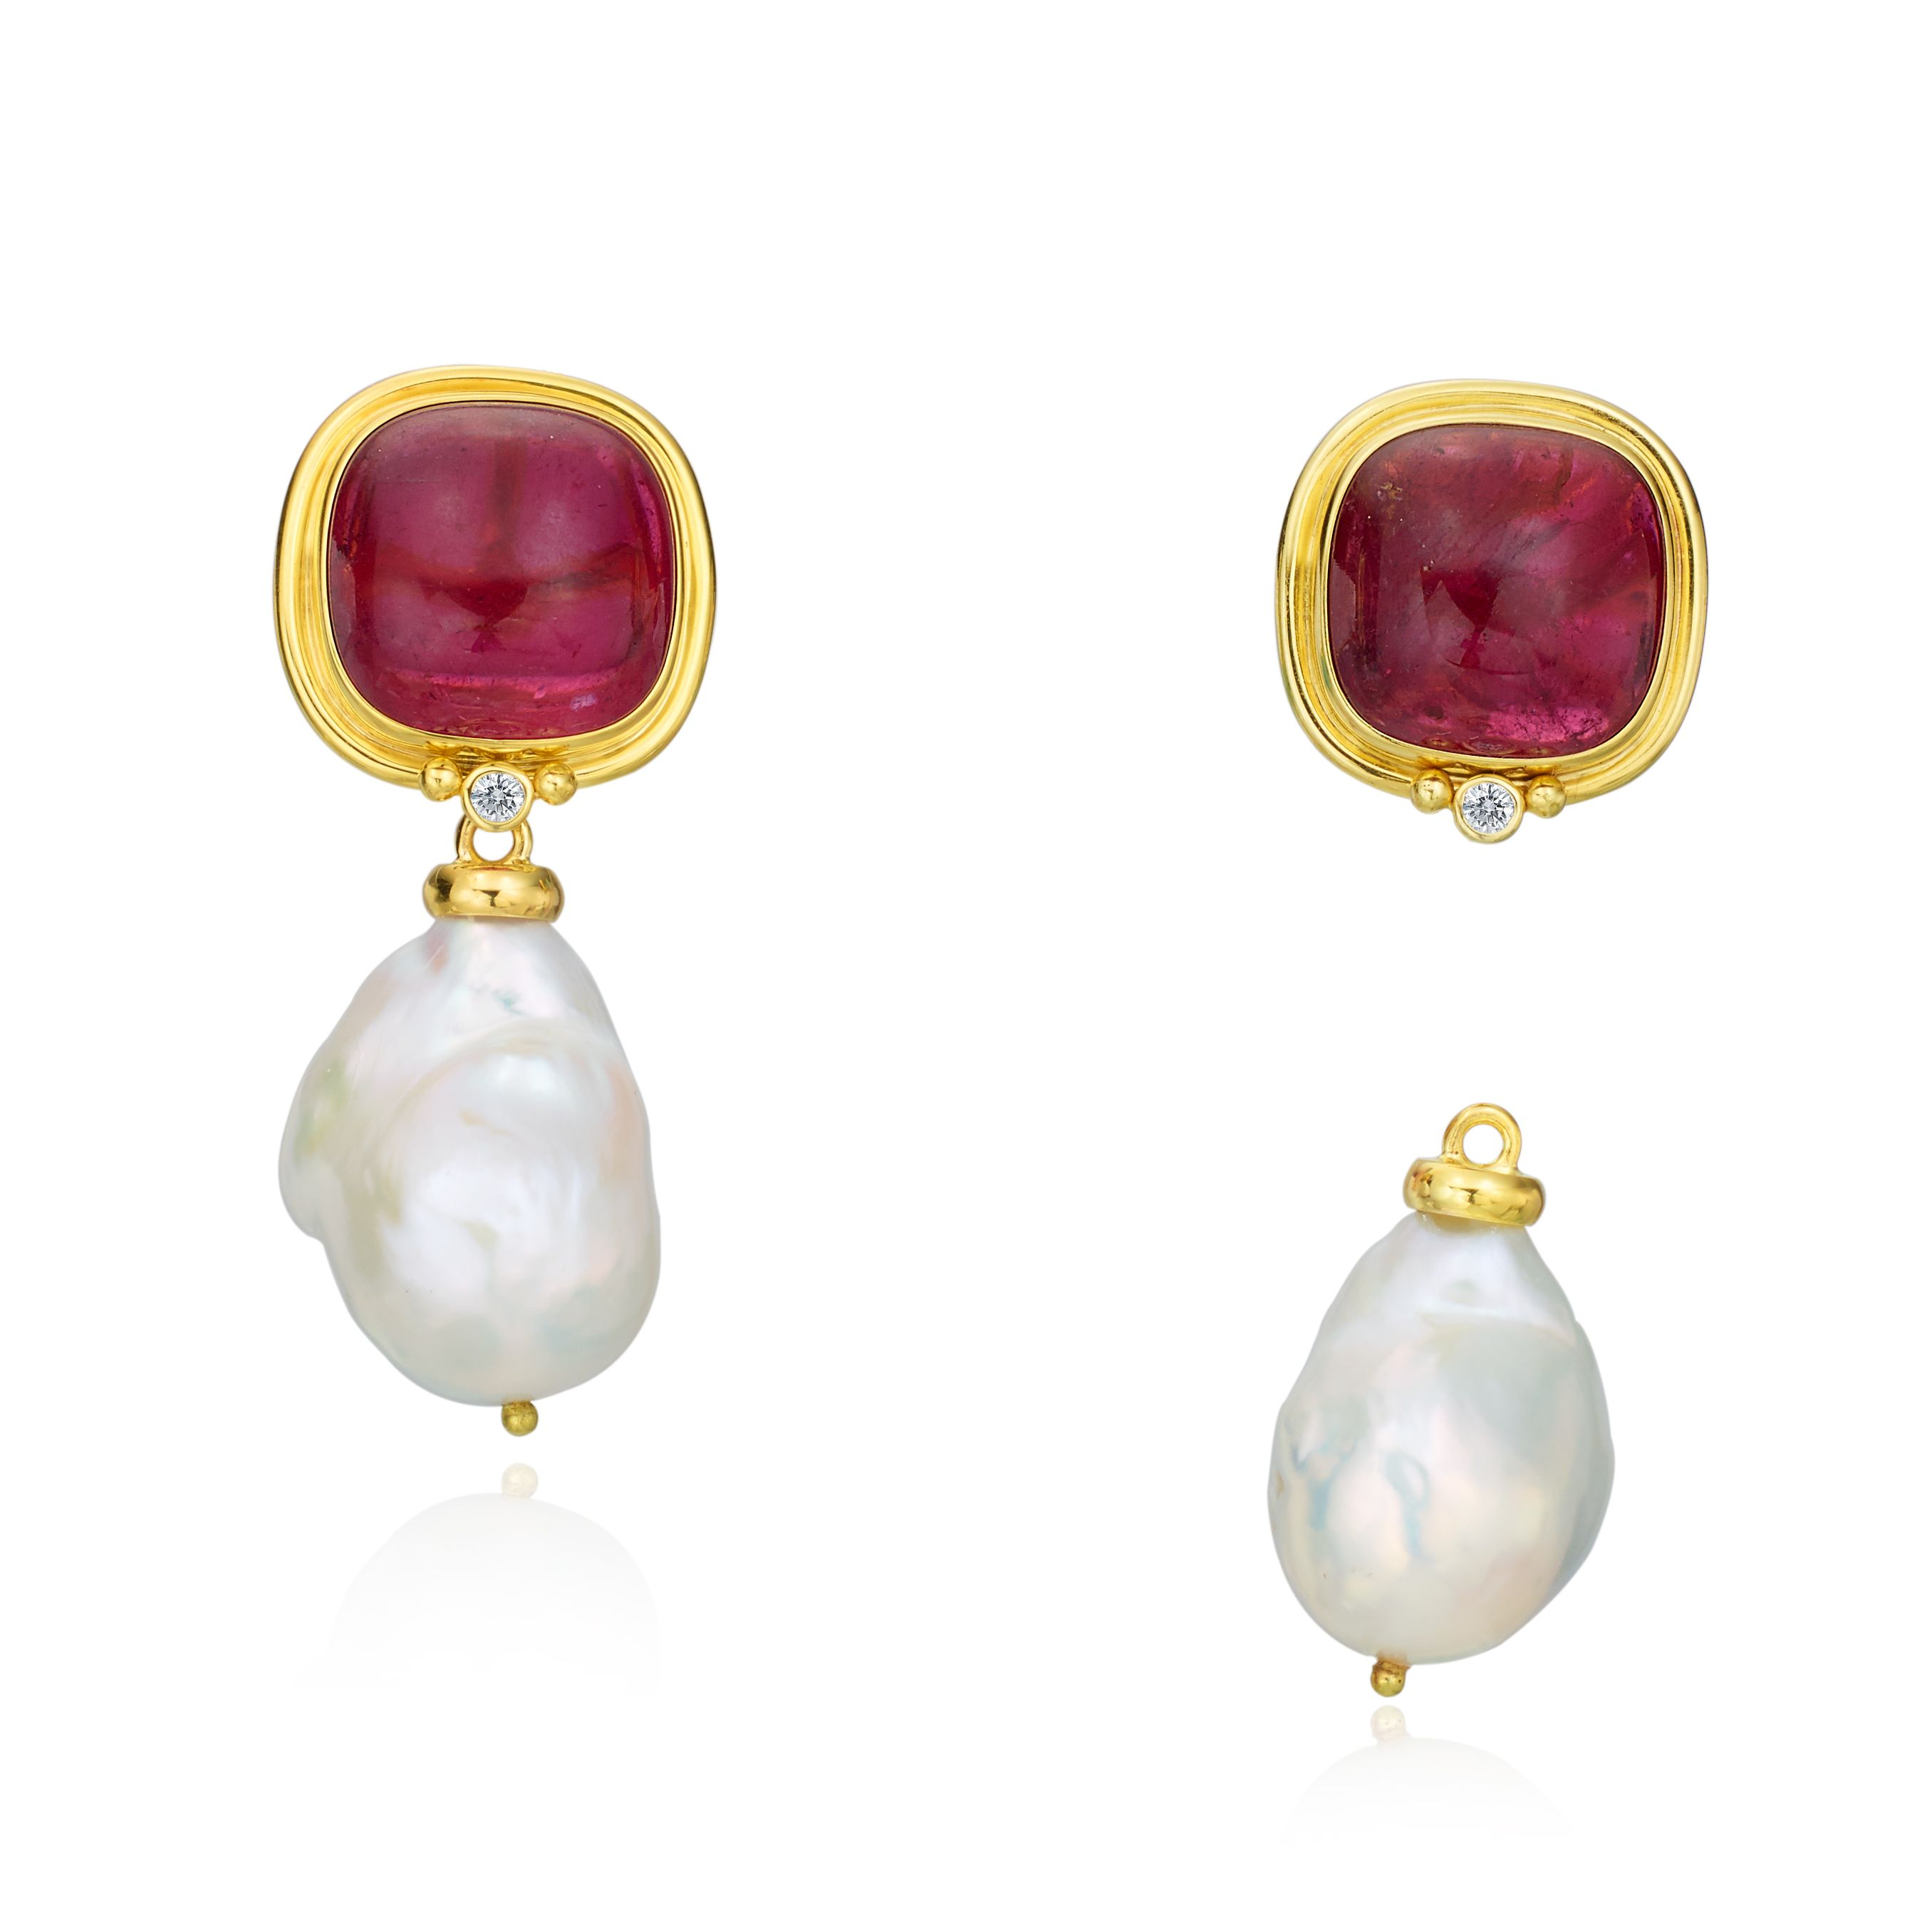 Yellow Gold Earrings With Semiprecious Stone And Diamonds And A Detachable  Pearl Drop Designed By The